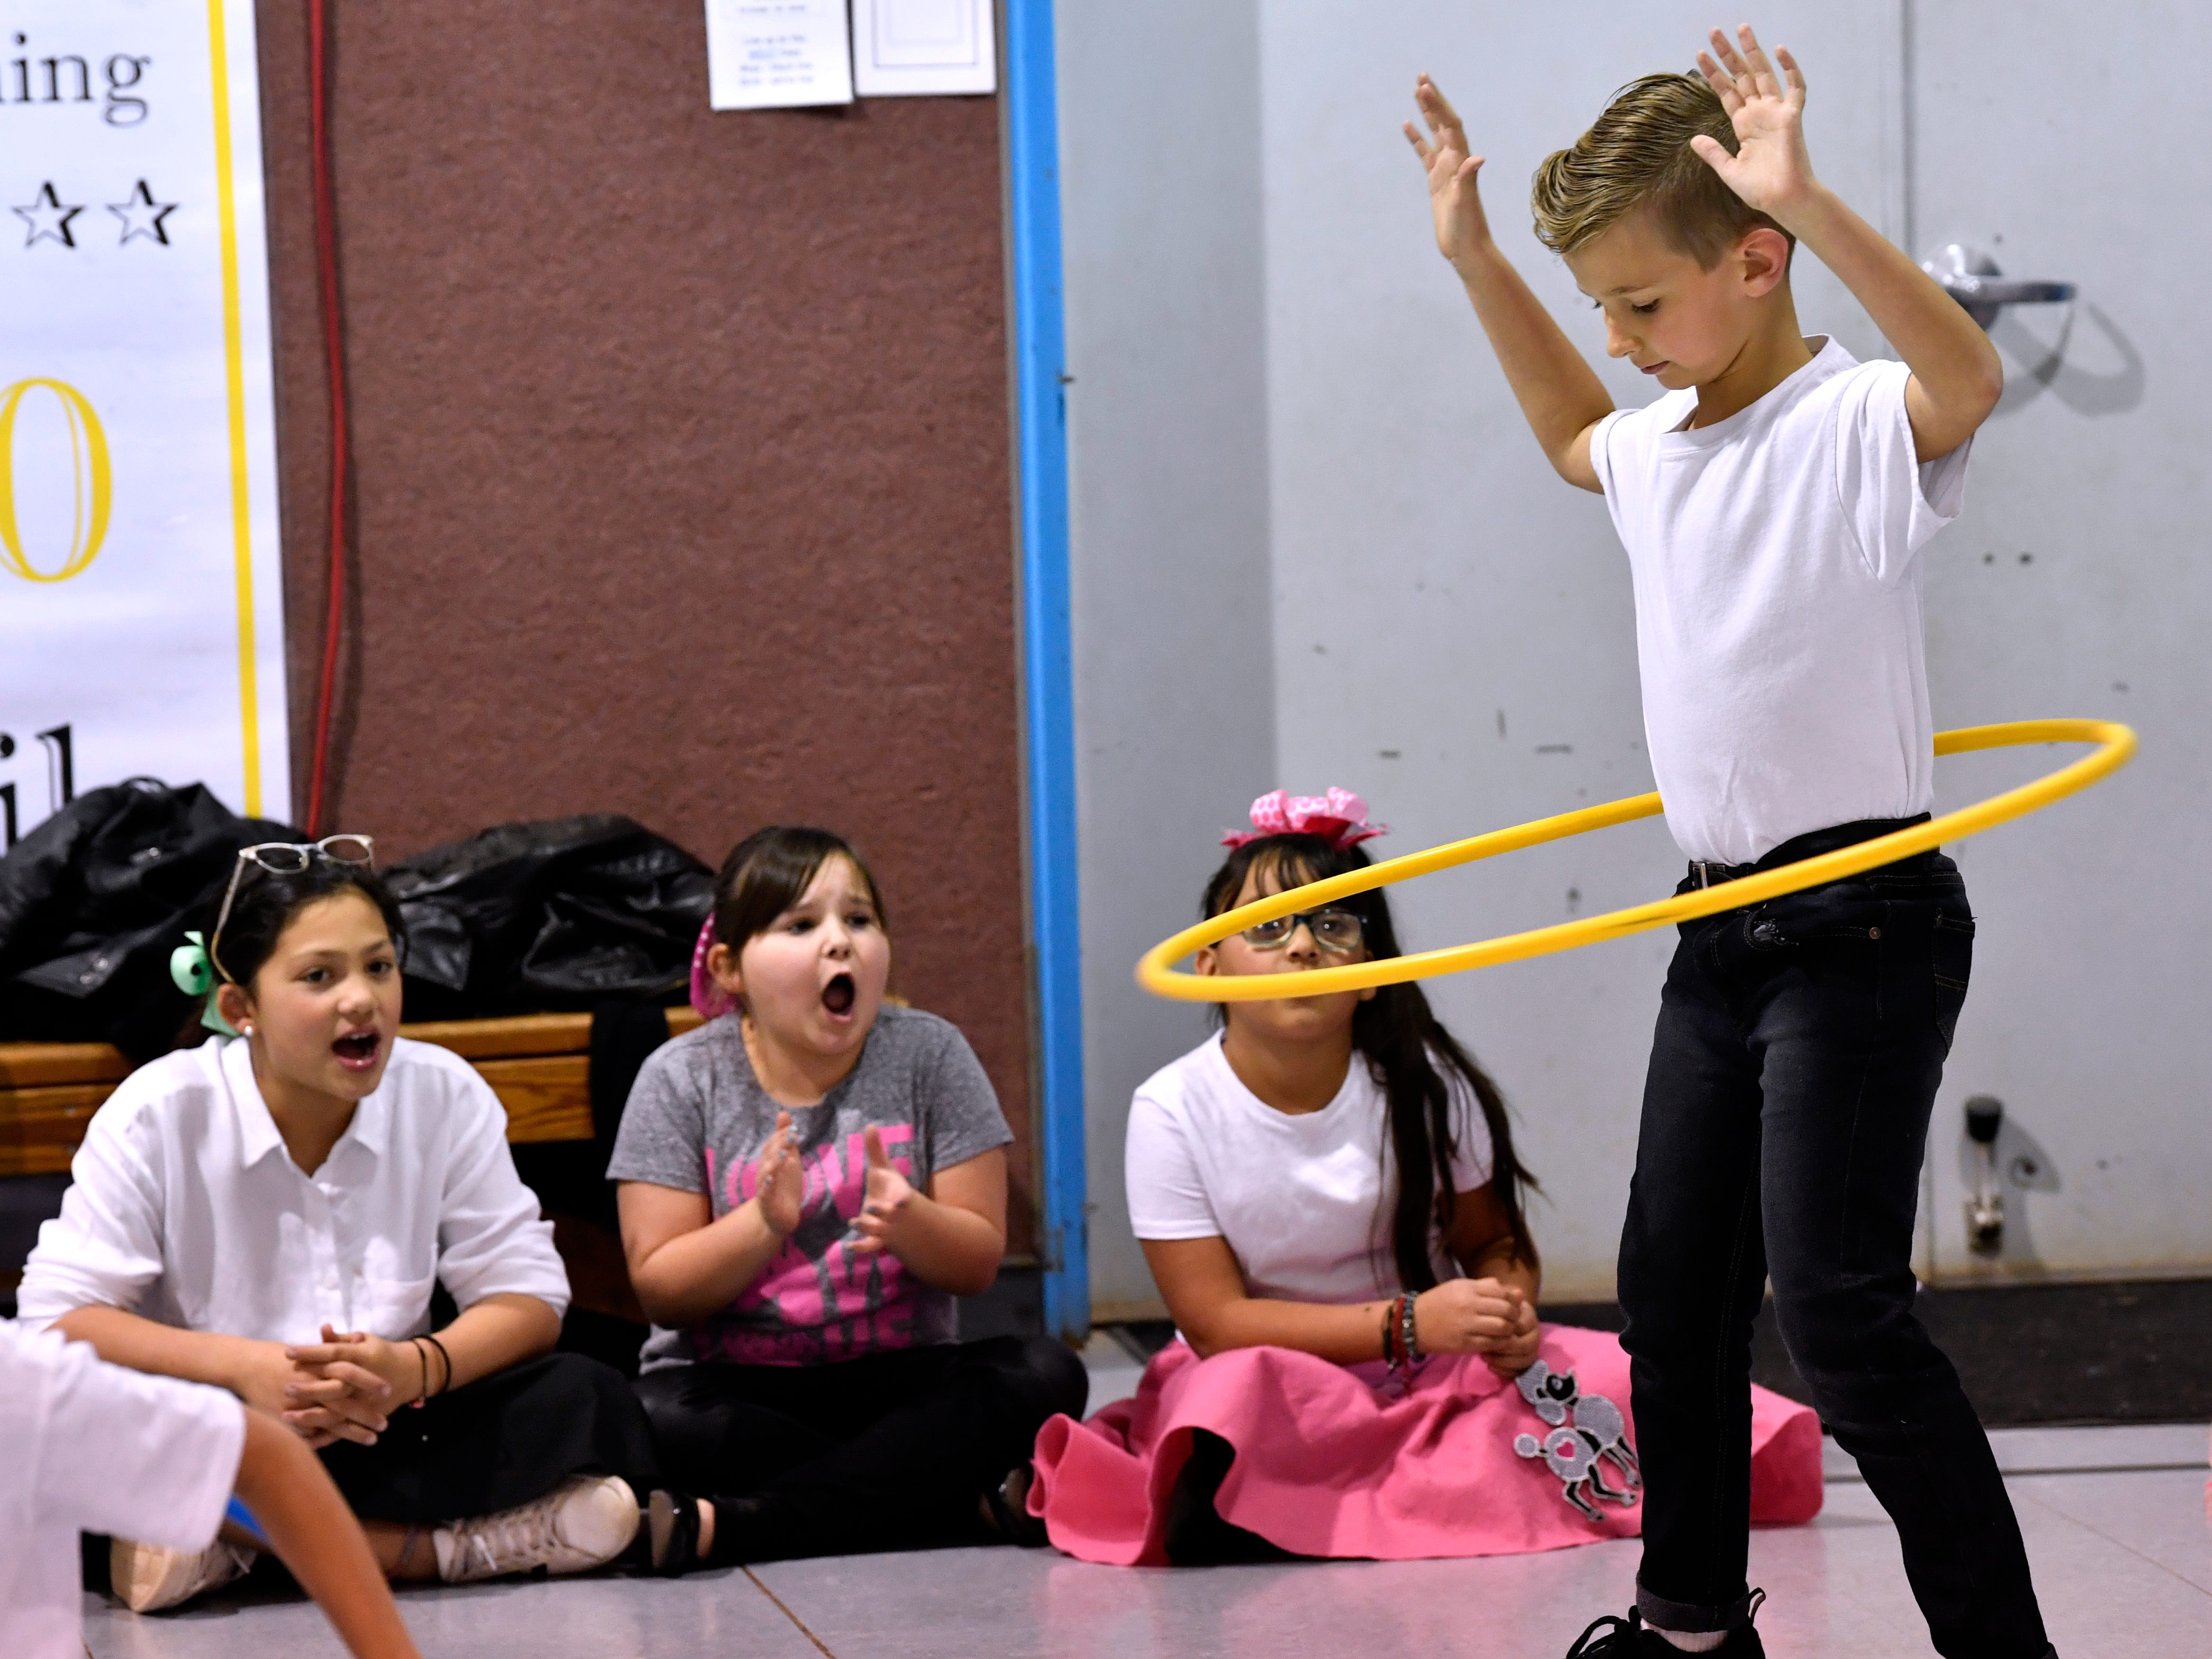 Elijah Palmer gets encouragement from other third-graders during a hula hoop contest in the Austin Elementary School gymnasium Jan. 25, 2019. Students from all grades participated in games and dances during Fifties Day.